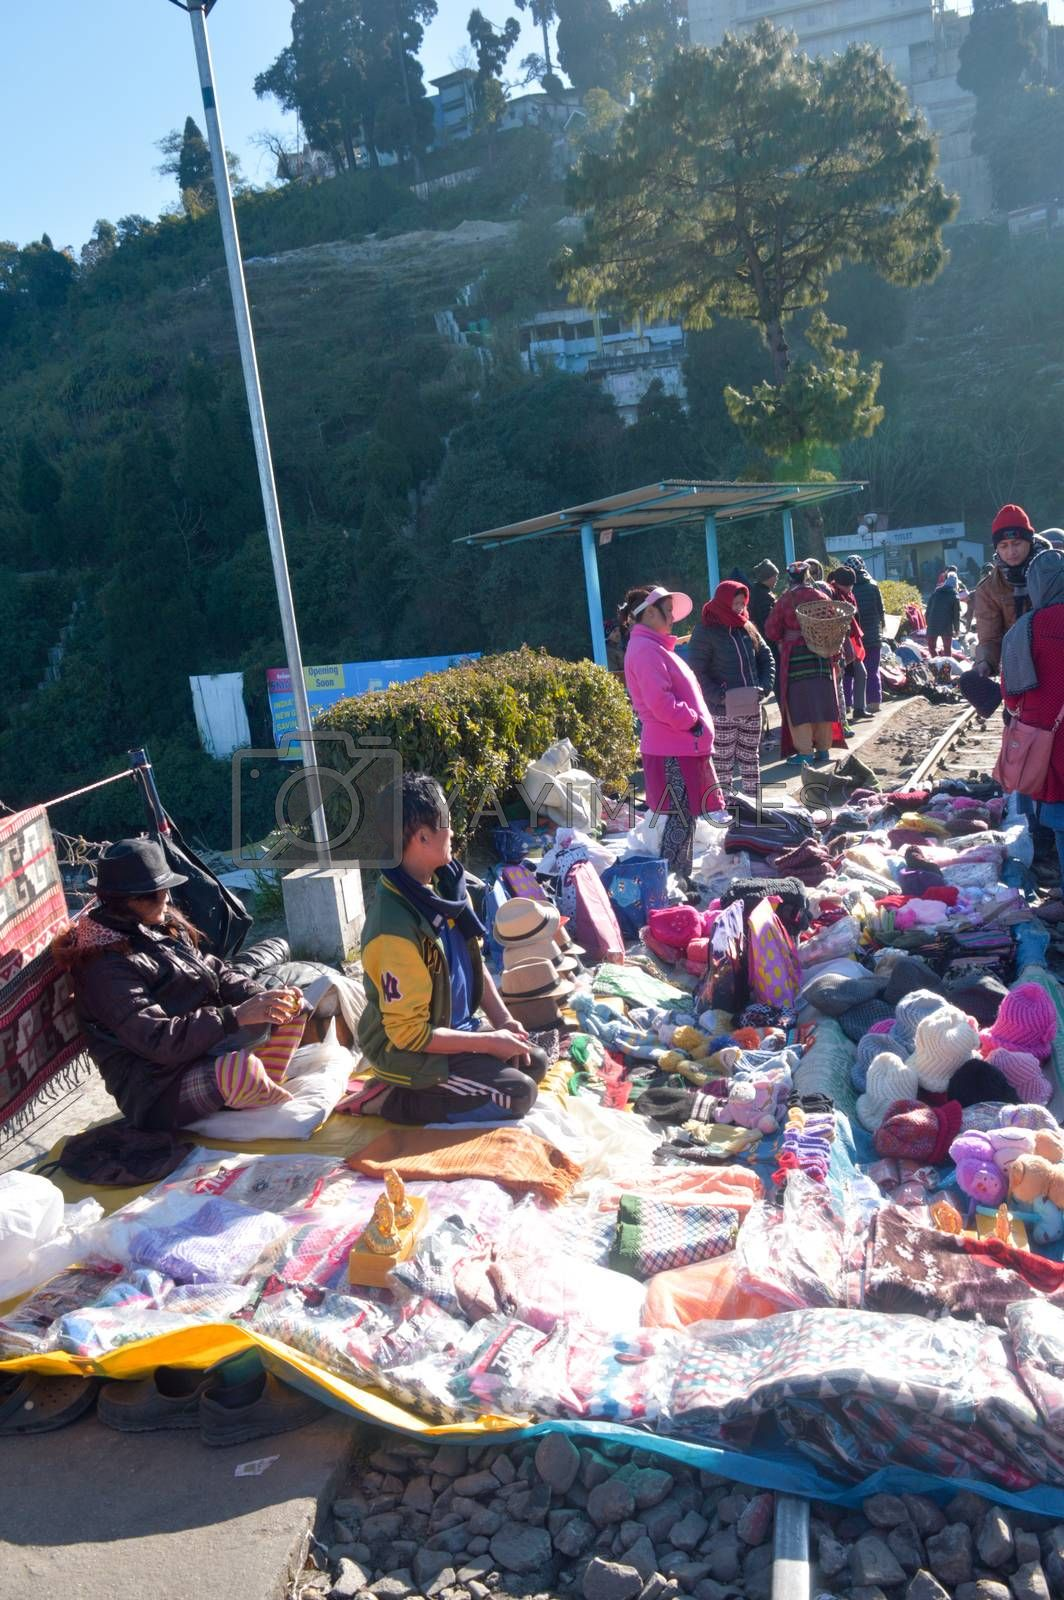 Batasia Loop, Darjeeling, 2 Jan 2019: Shopkeepers with their little makeshift stalls on the railway lines, wrap up their business with great agility and speed as the toy train arrives.